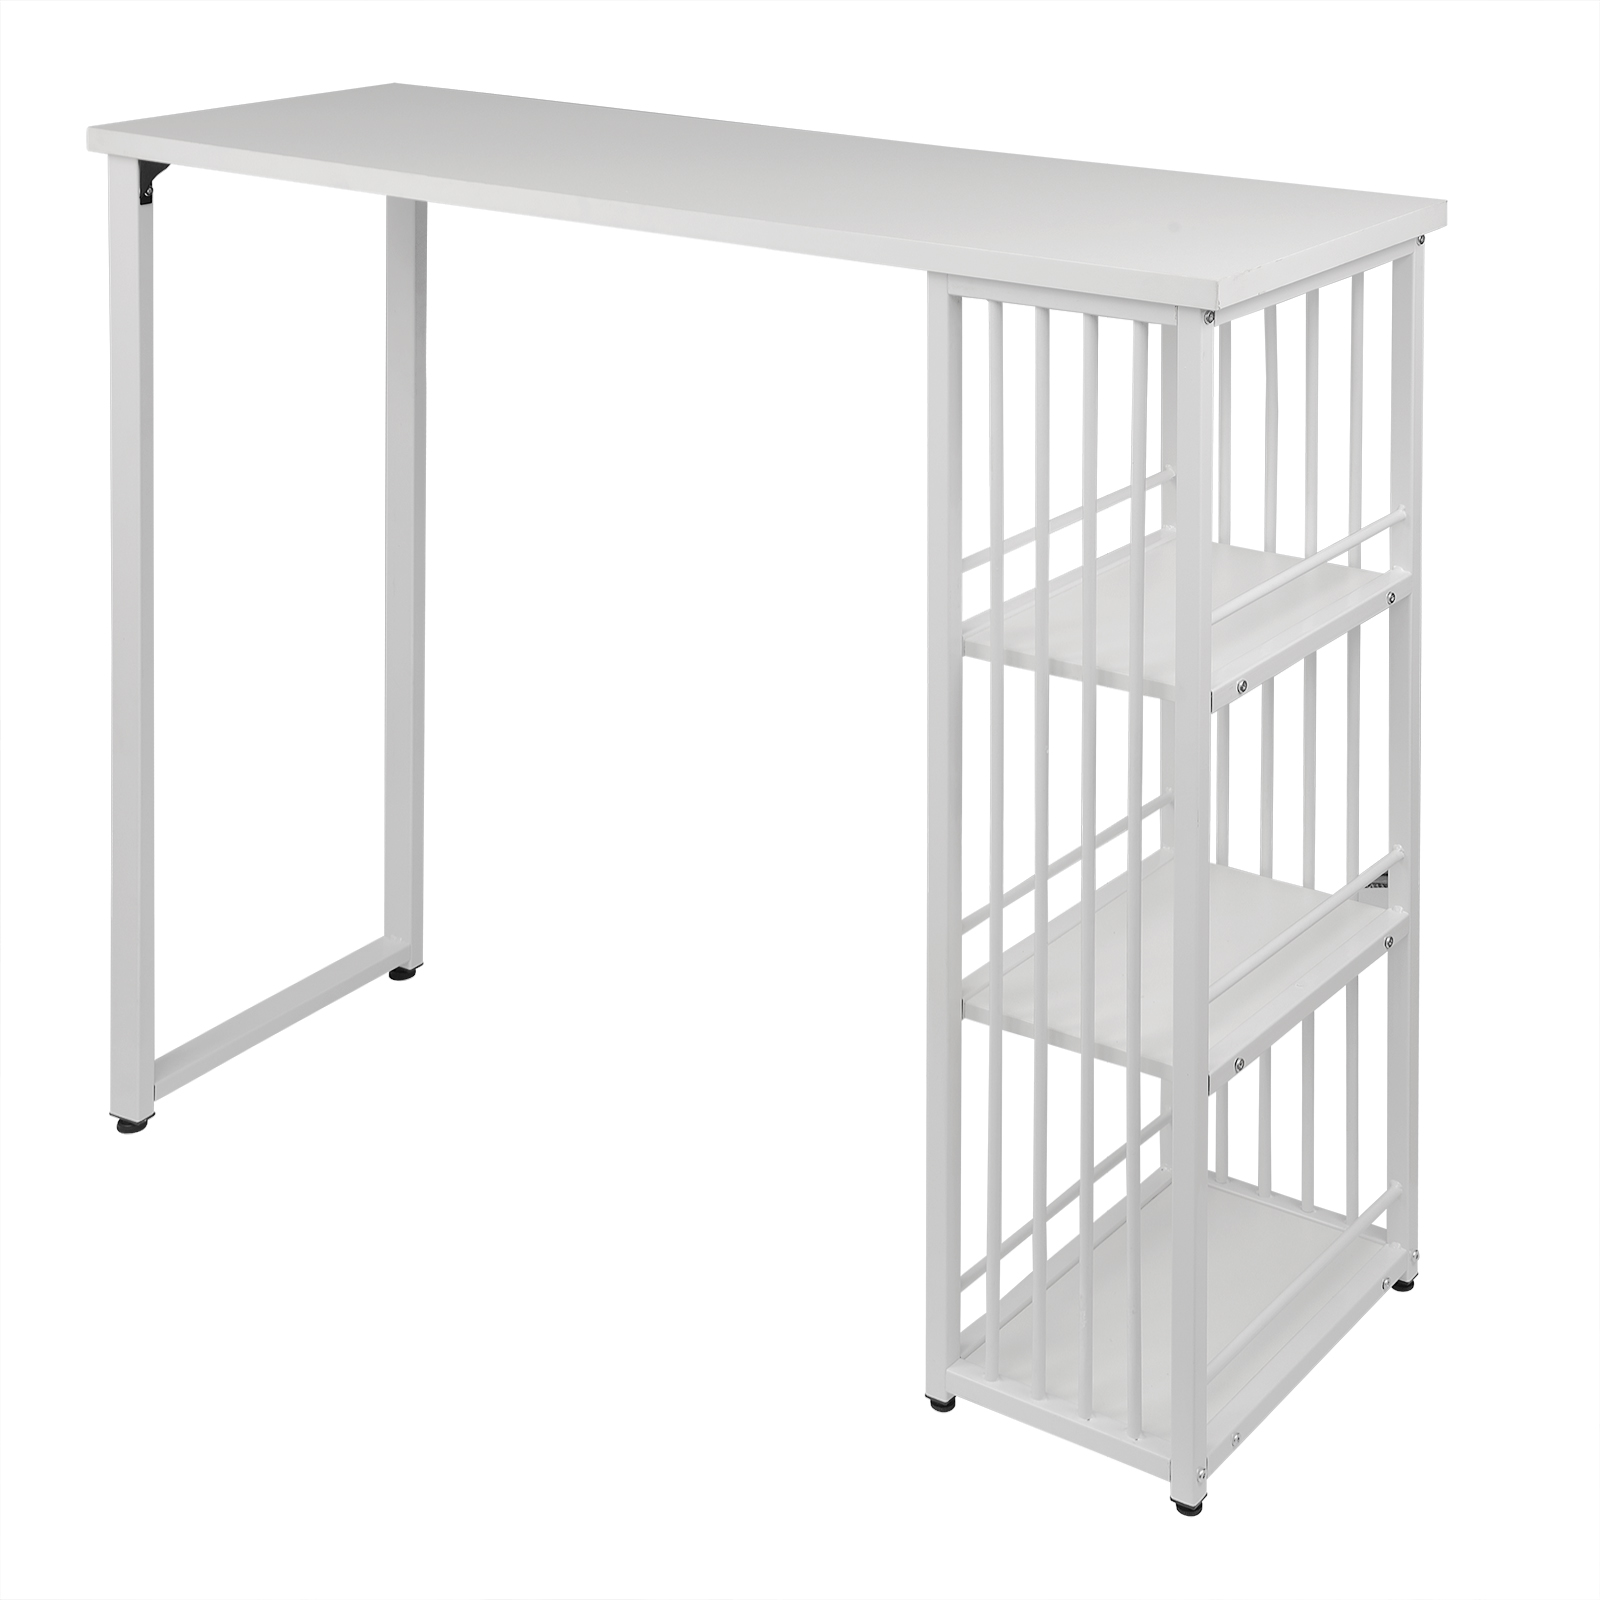 1PC Kitchen Bar Counter Table Bistro Table Breakfast Dining Coffee Table with 2-Tier Storage Rack Shelves for Beverage Display